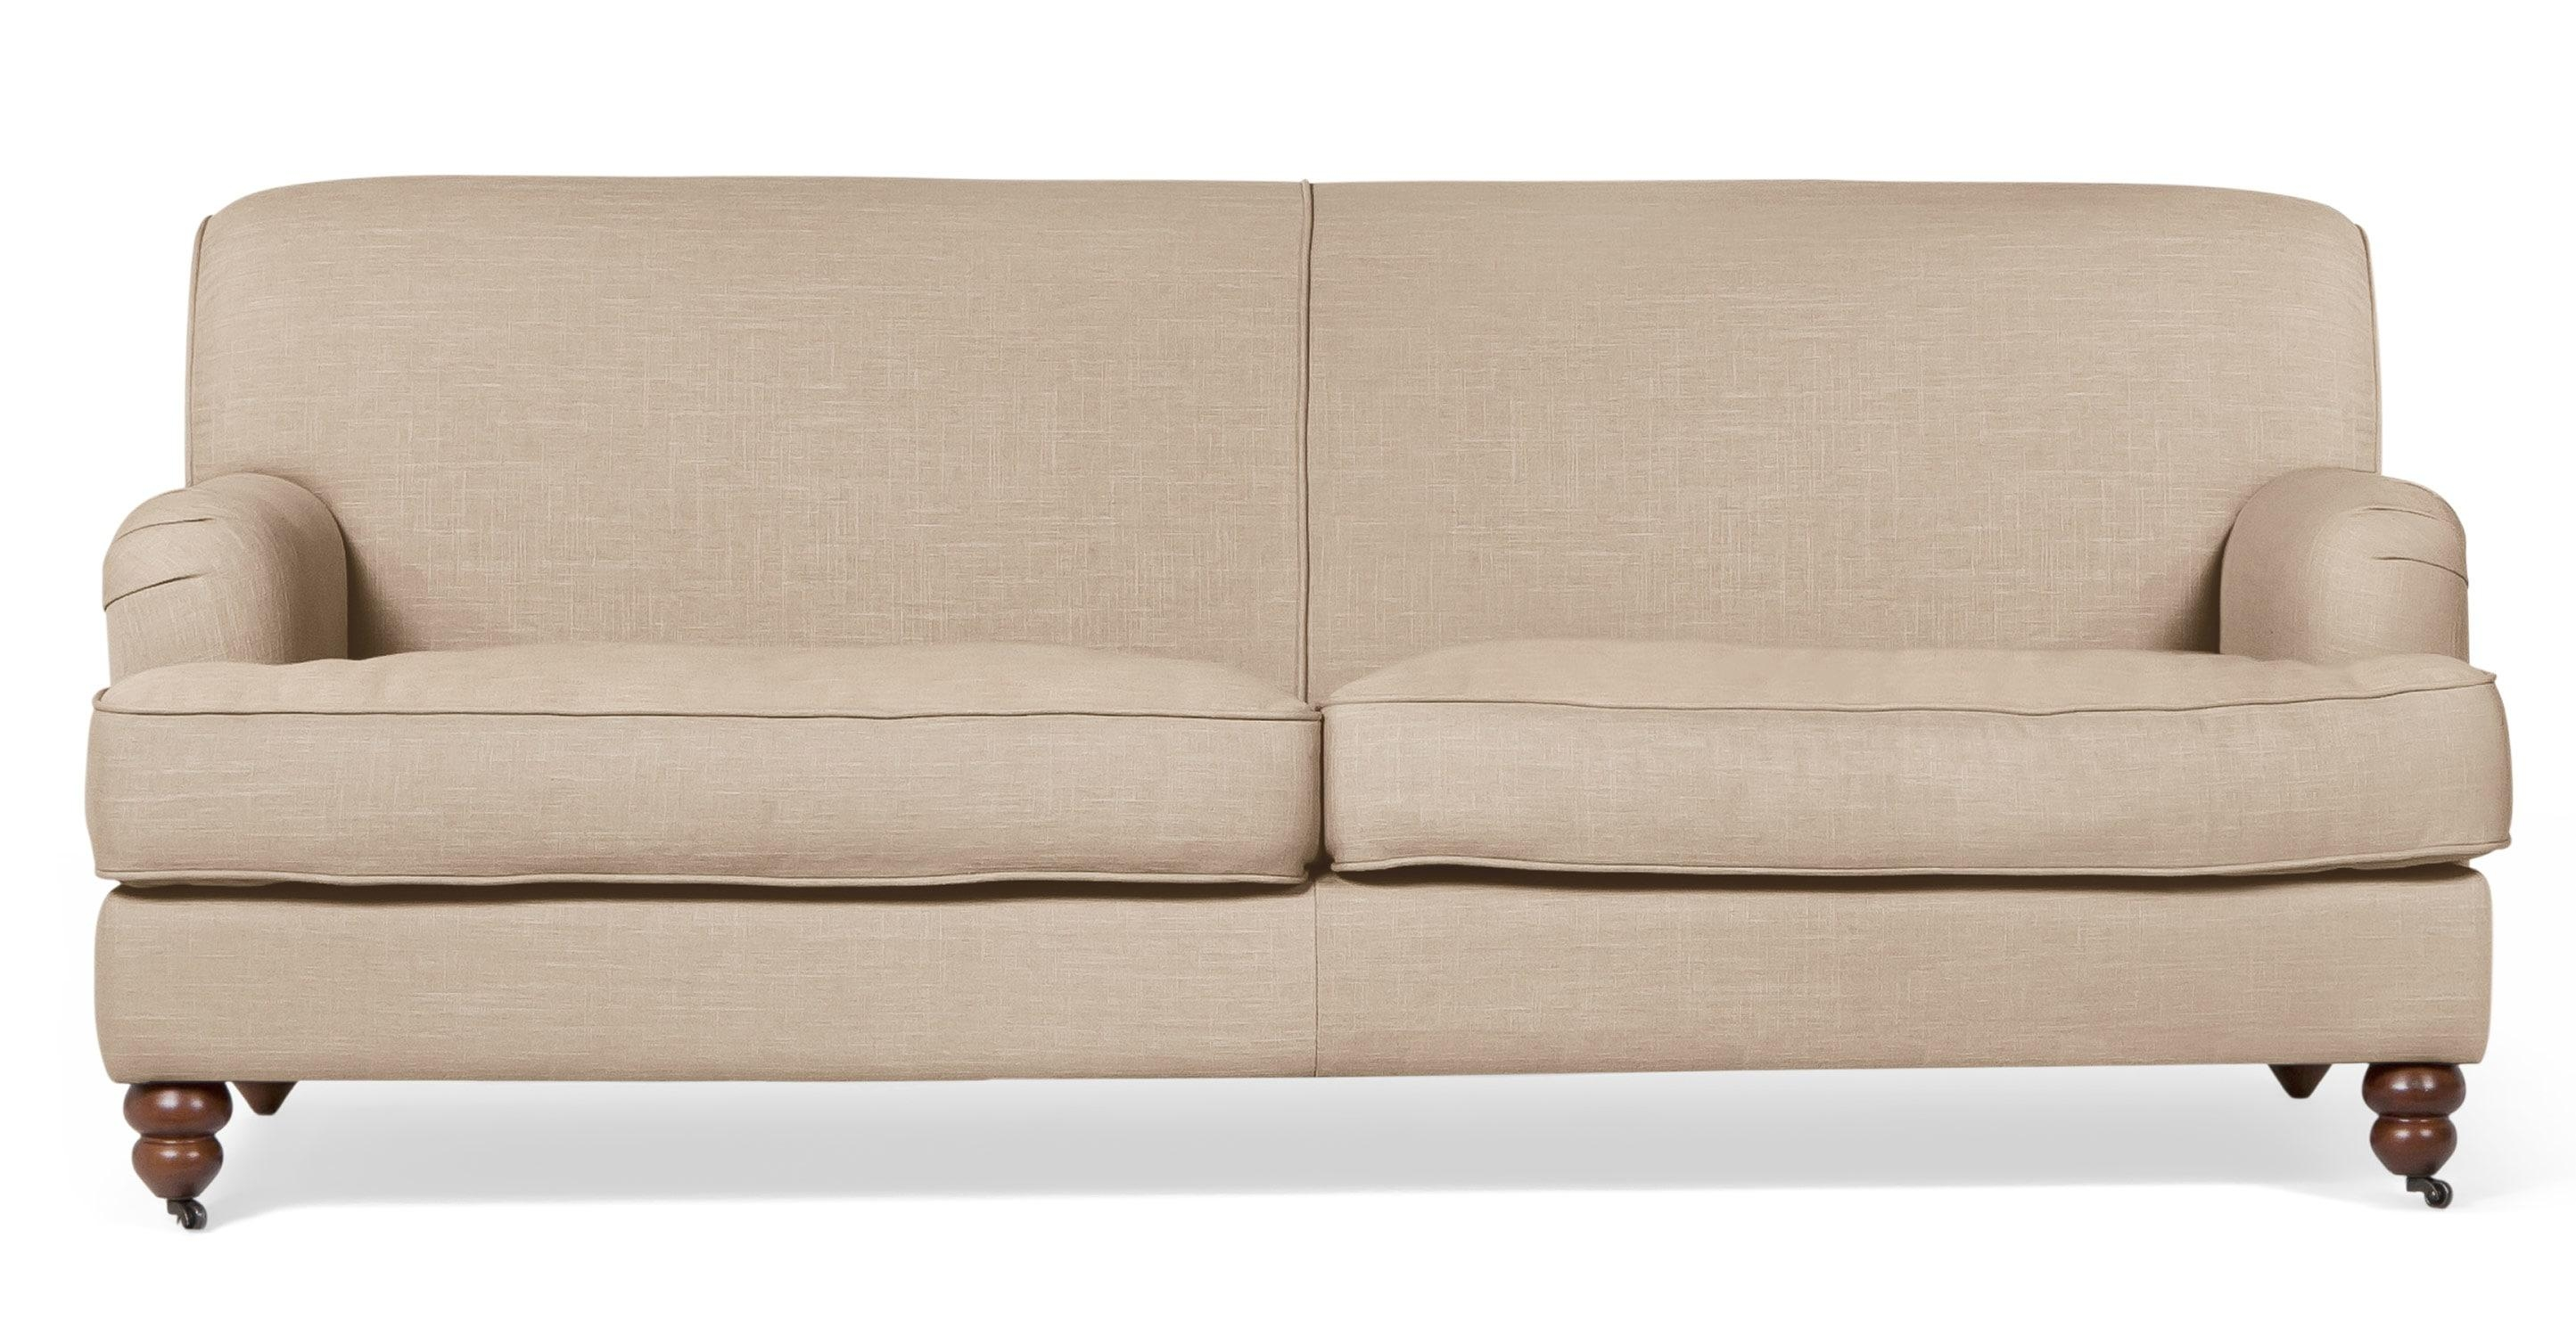 Furniture: Ashley Couches | Beige Couch | Reclining Leather Sofa Within Casters Sofas (View 13 of 20)